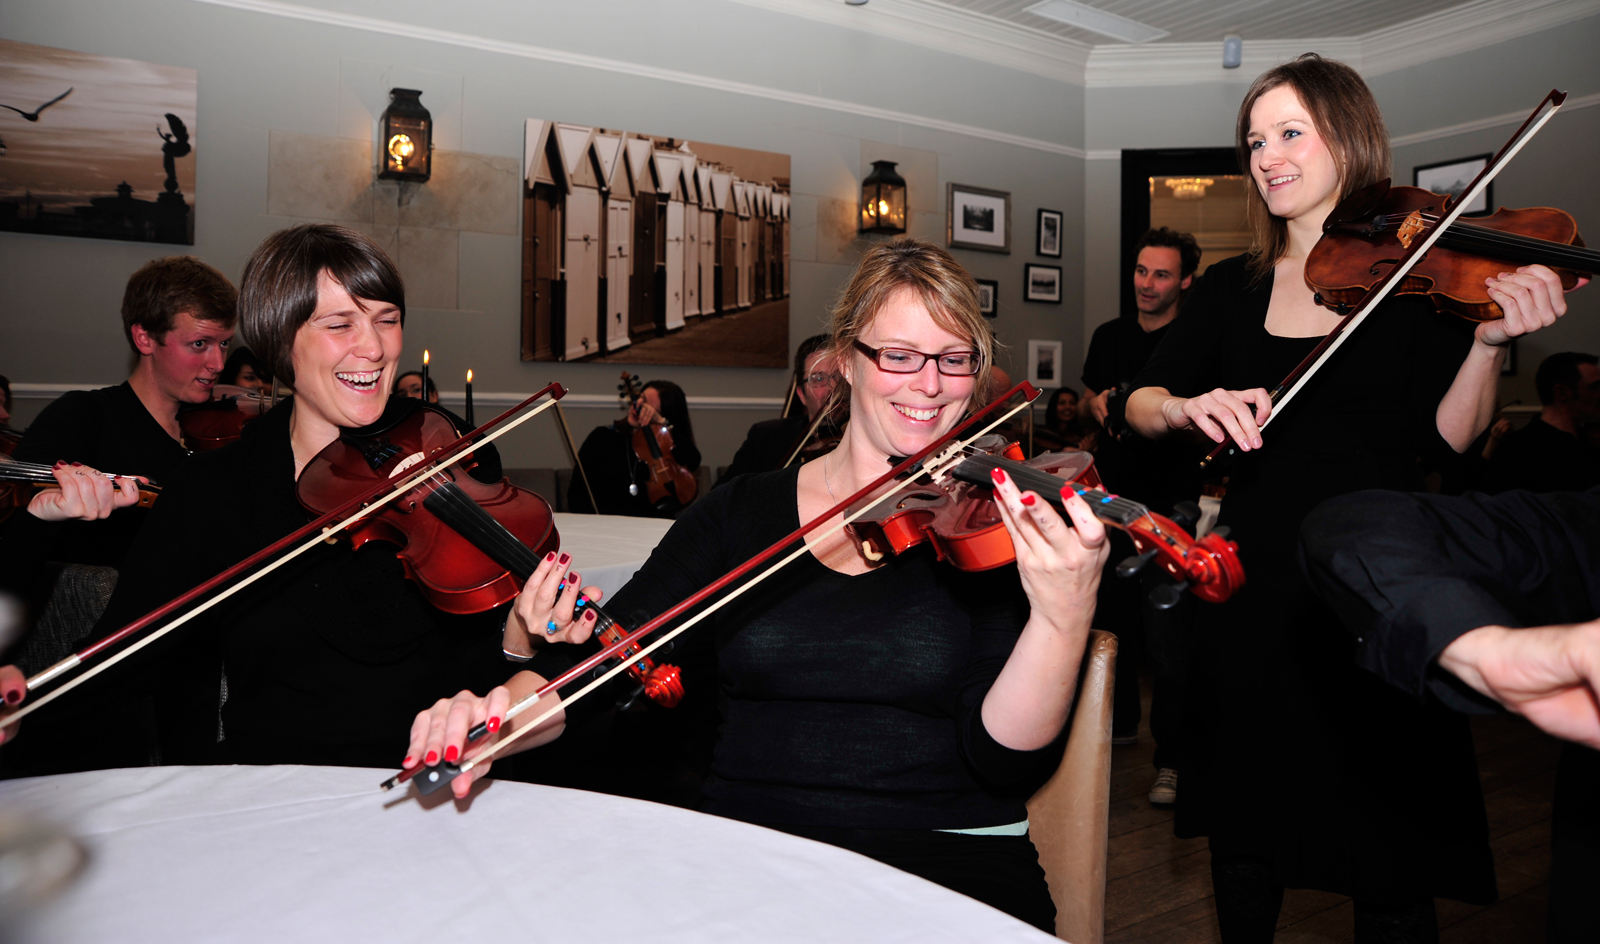 How Musical Team Building Can Help Boost Team Performance